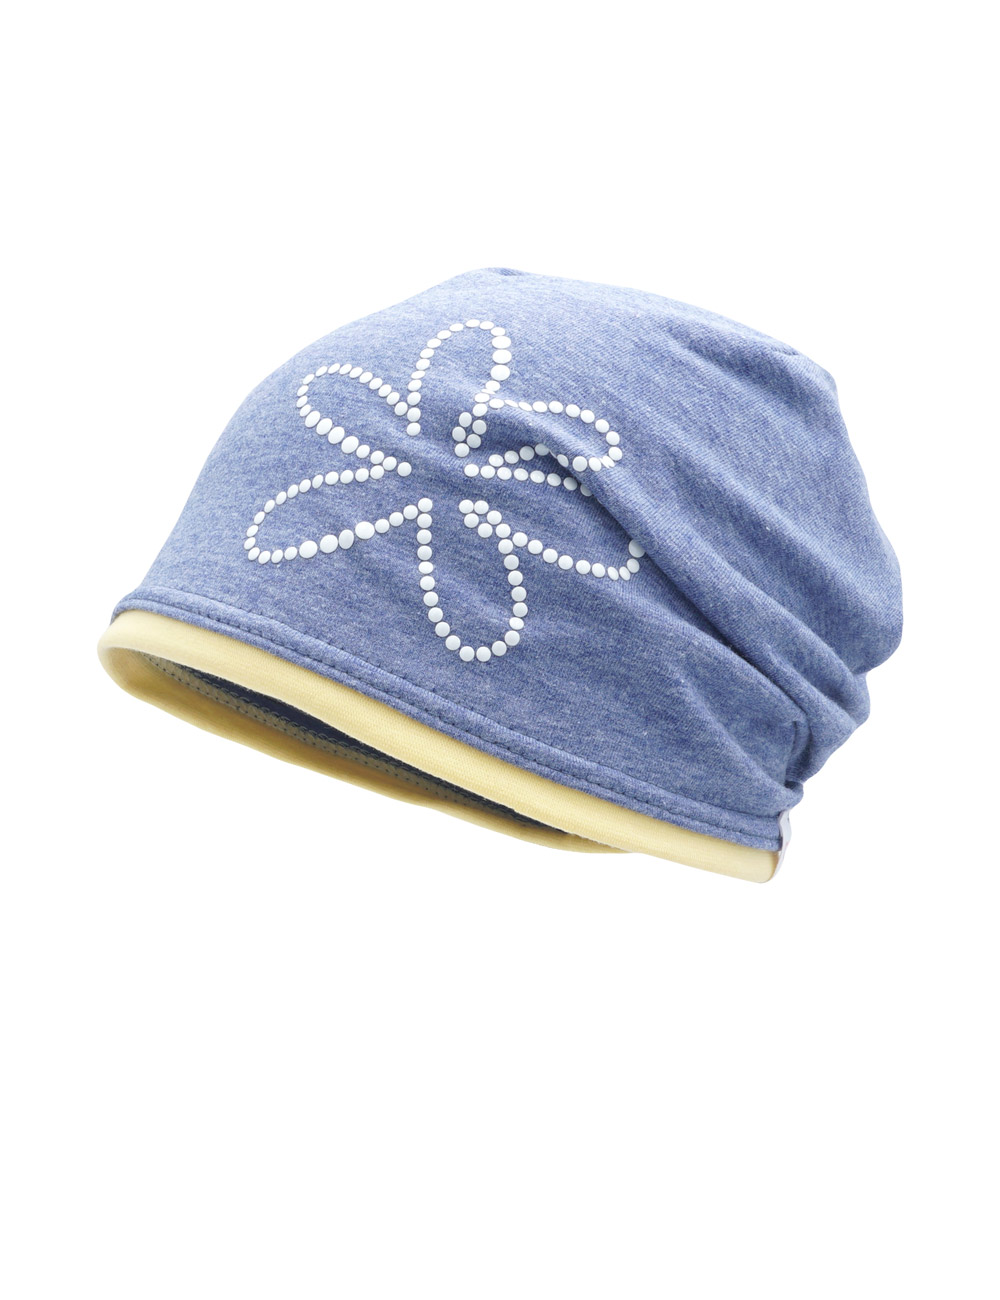 Beanie middle, Rollrand 51 Maximo. Farbe: jeansmeliert/narzisse, Größe: 51